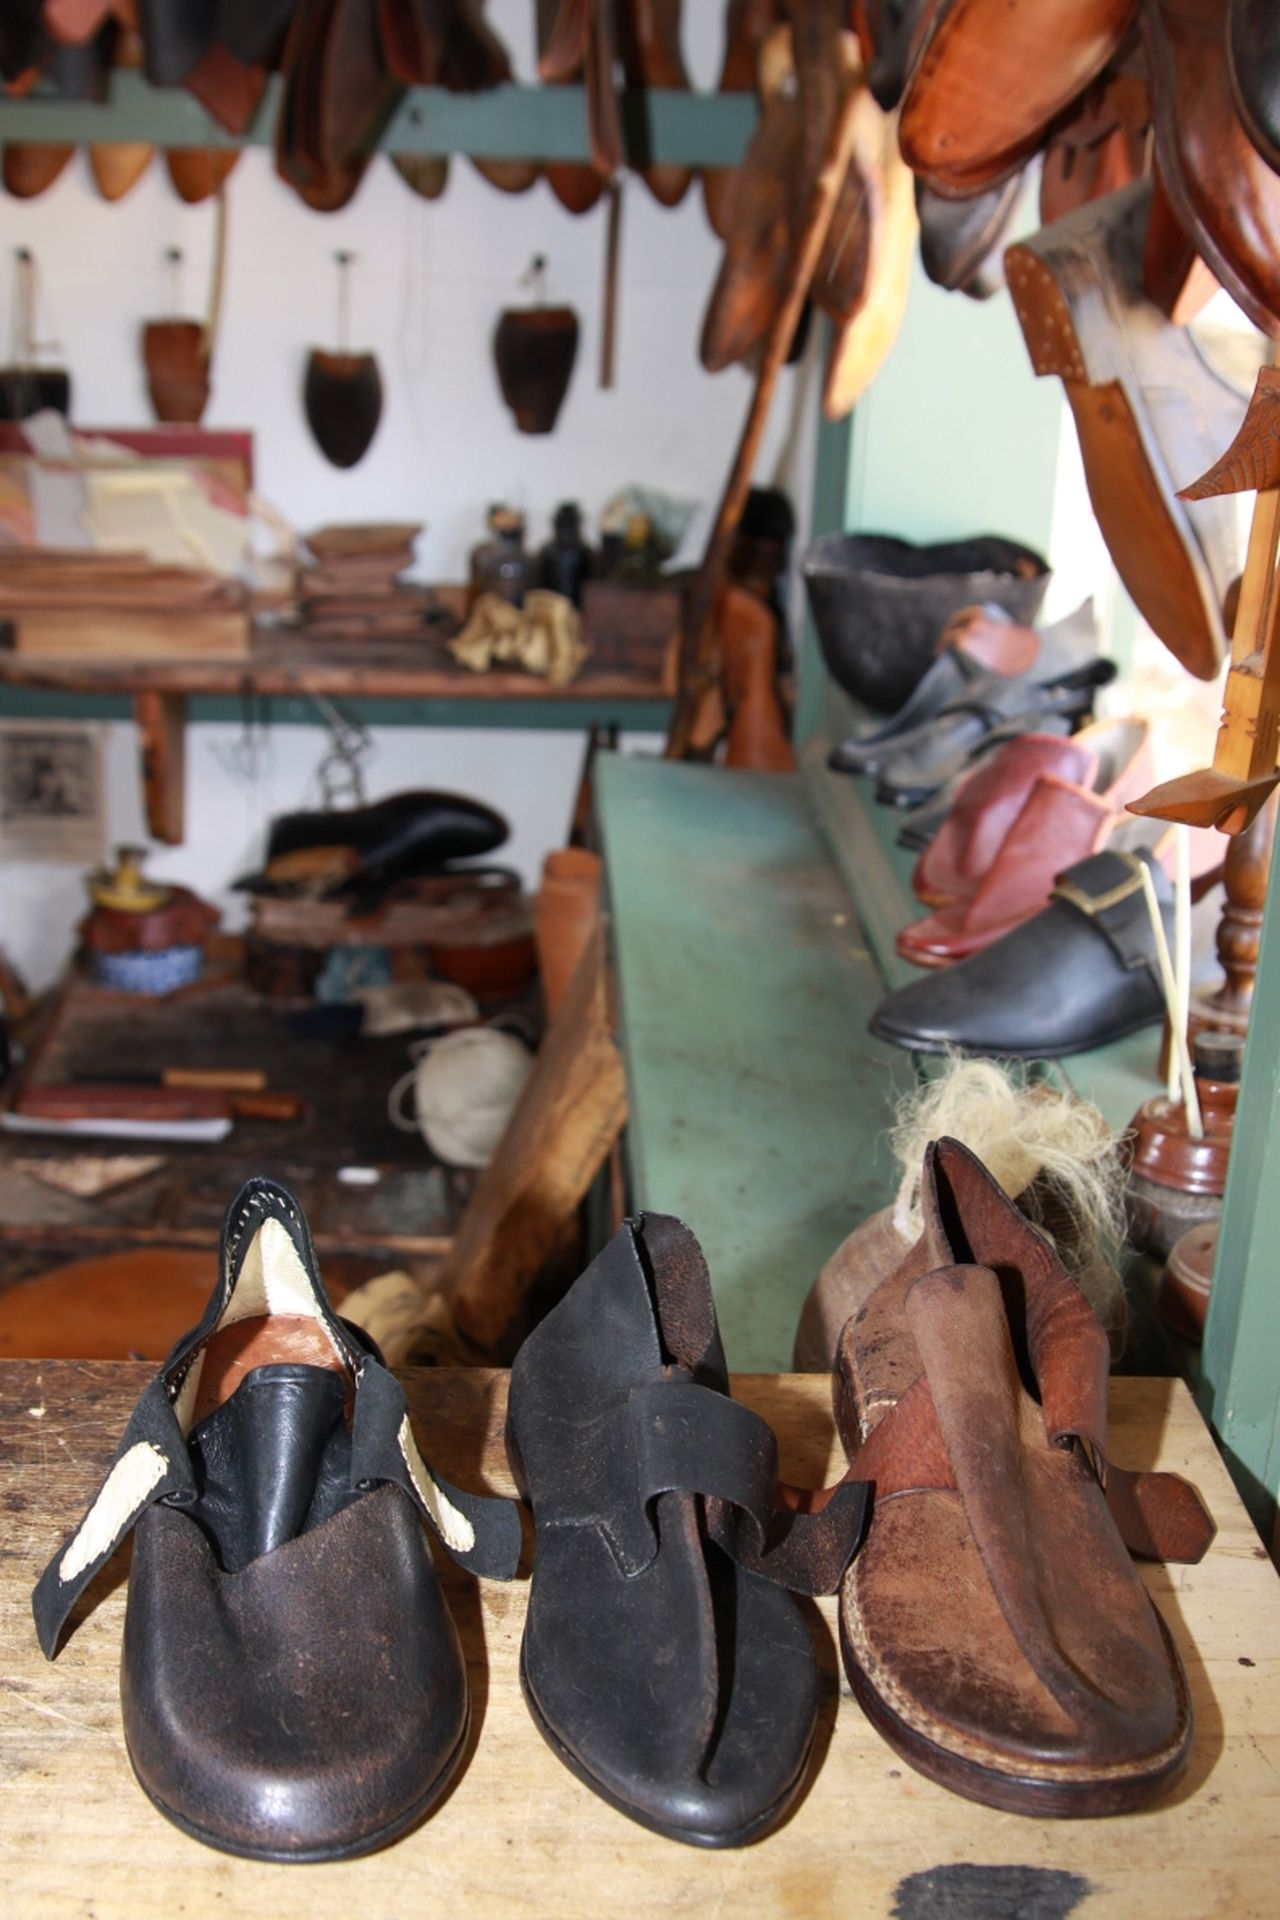 Other People's Shoes Colonial Williamsburg Historical Places ! Shoes from colonial times.